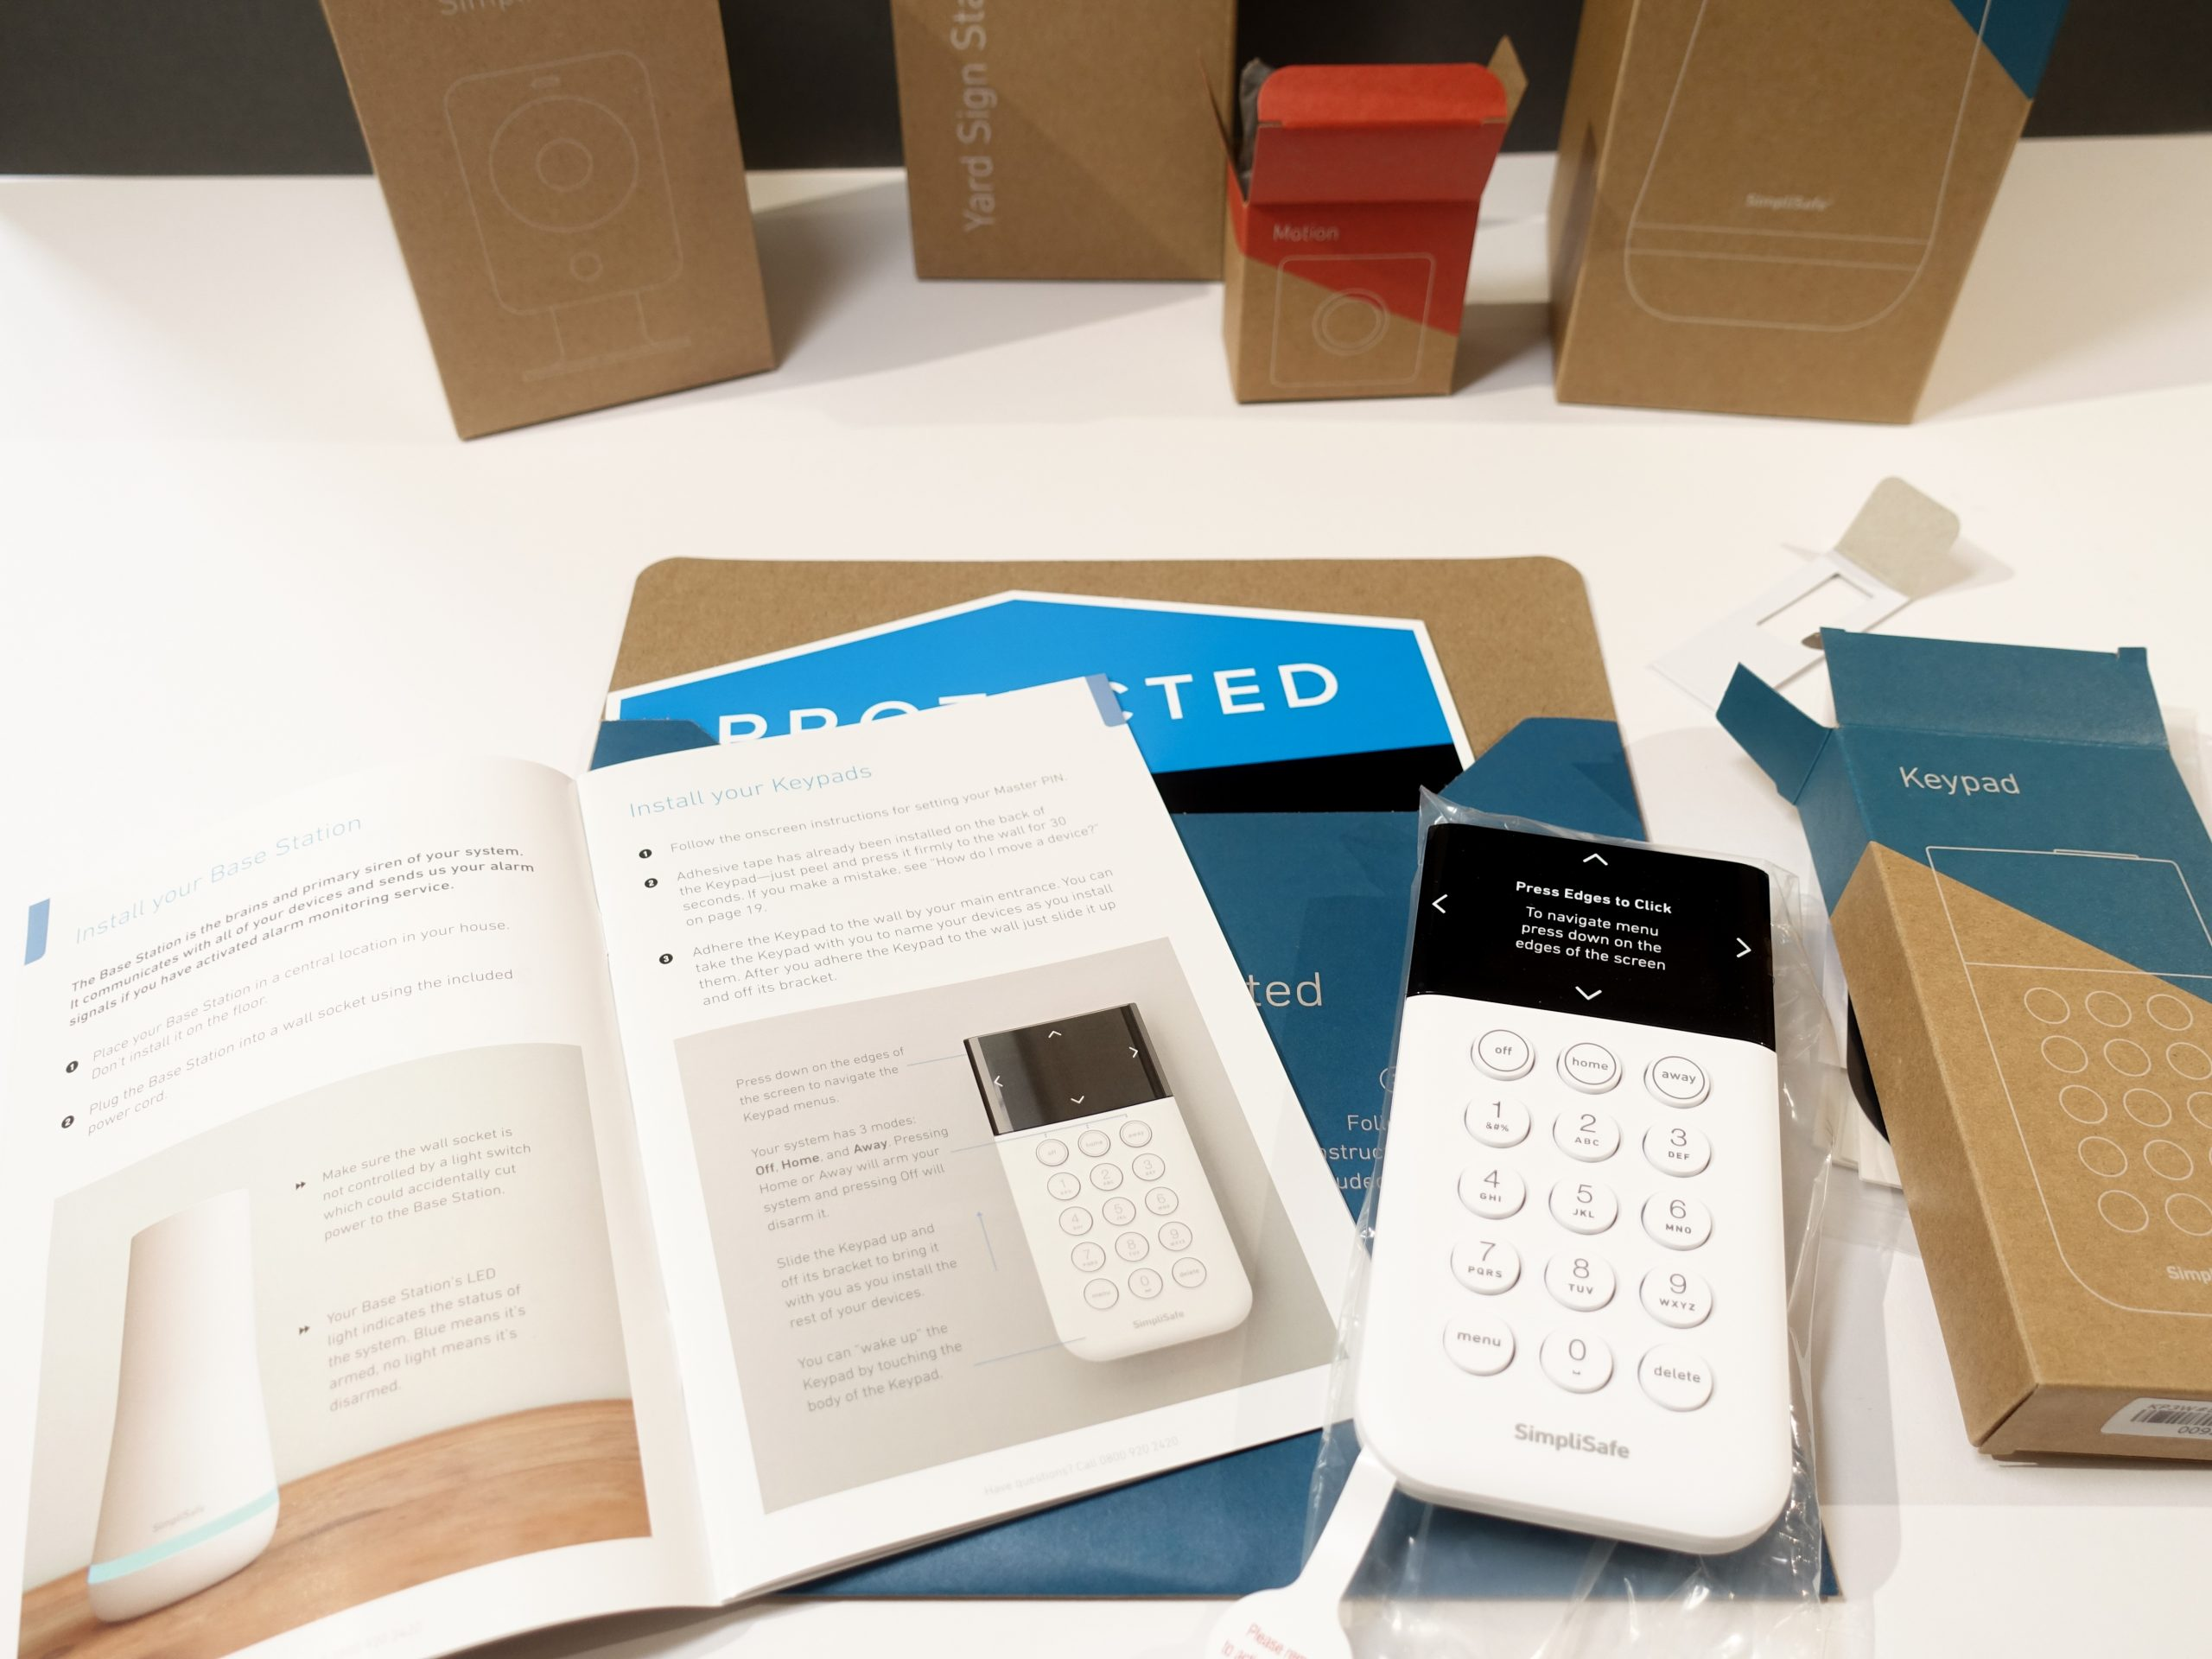 Getting Started 1 (SimpliSafe Kit)